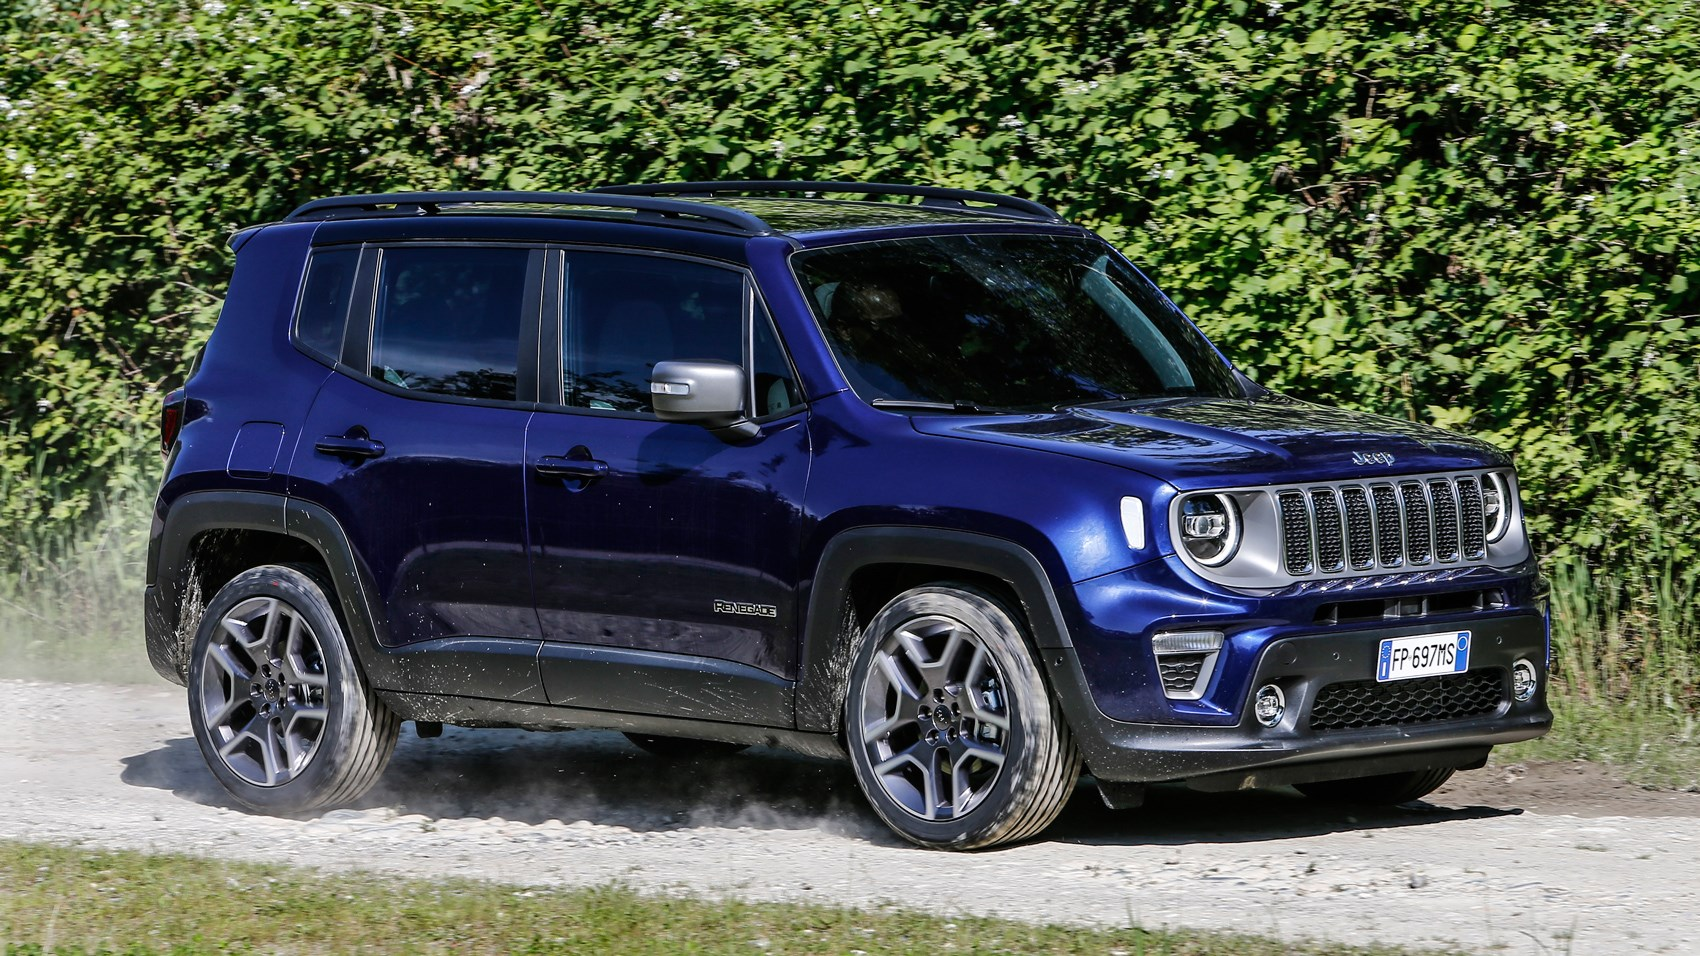 Jeep Renegade (2018) SUV review: chunky charm | CAR Magazine